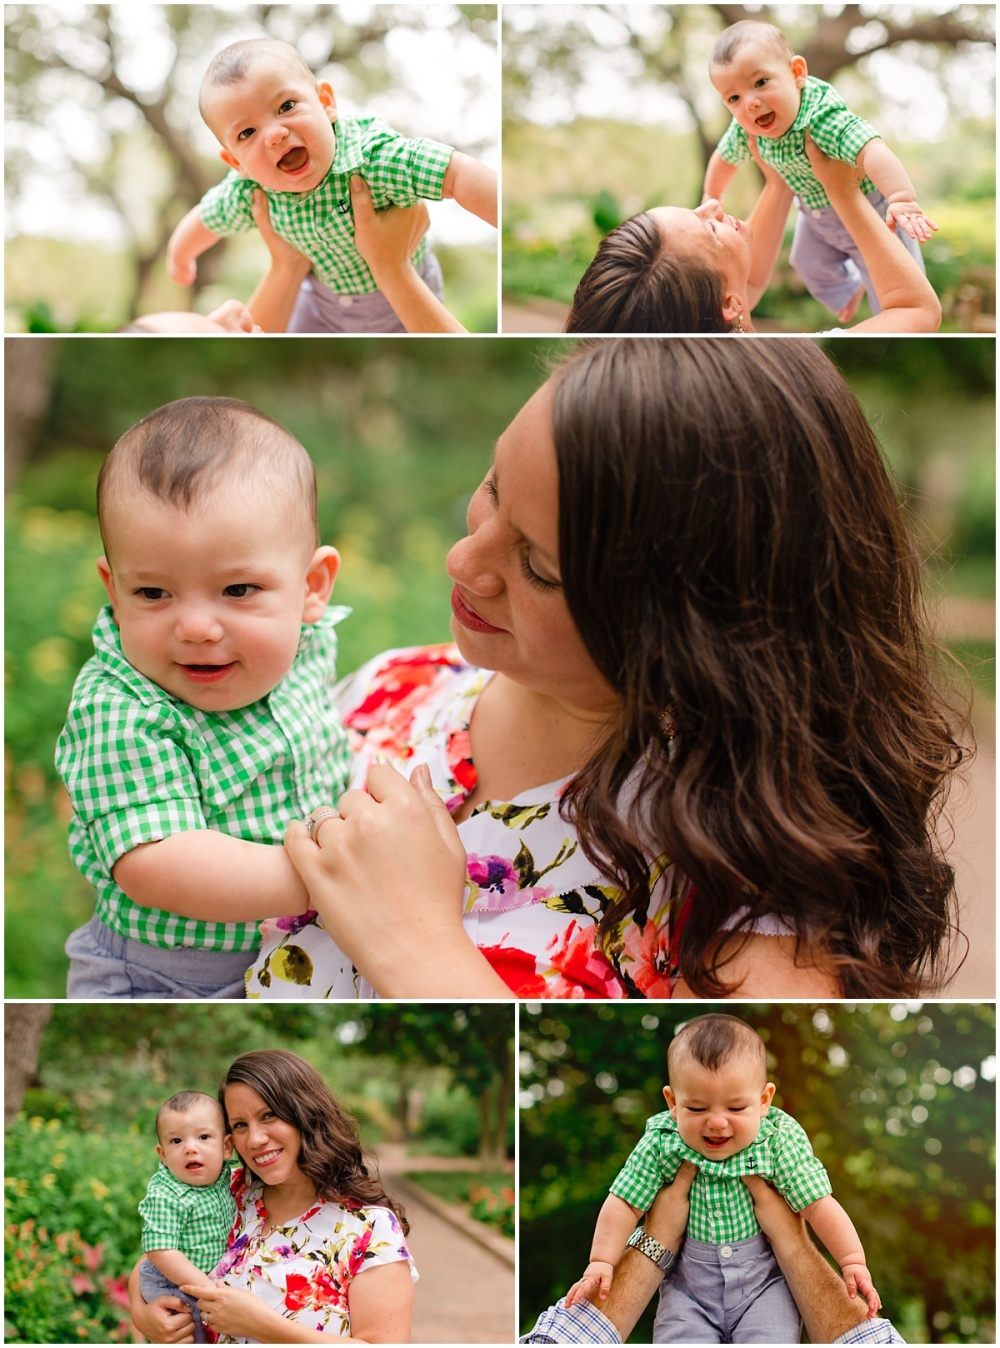 Family-Children-Maternity-Portraits-San-Antonio-Hill-Country-Texas-Carly-Barton-Photography_0016.jpg